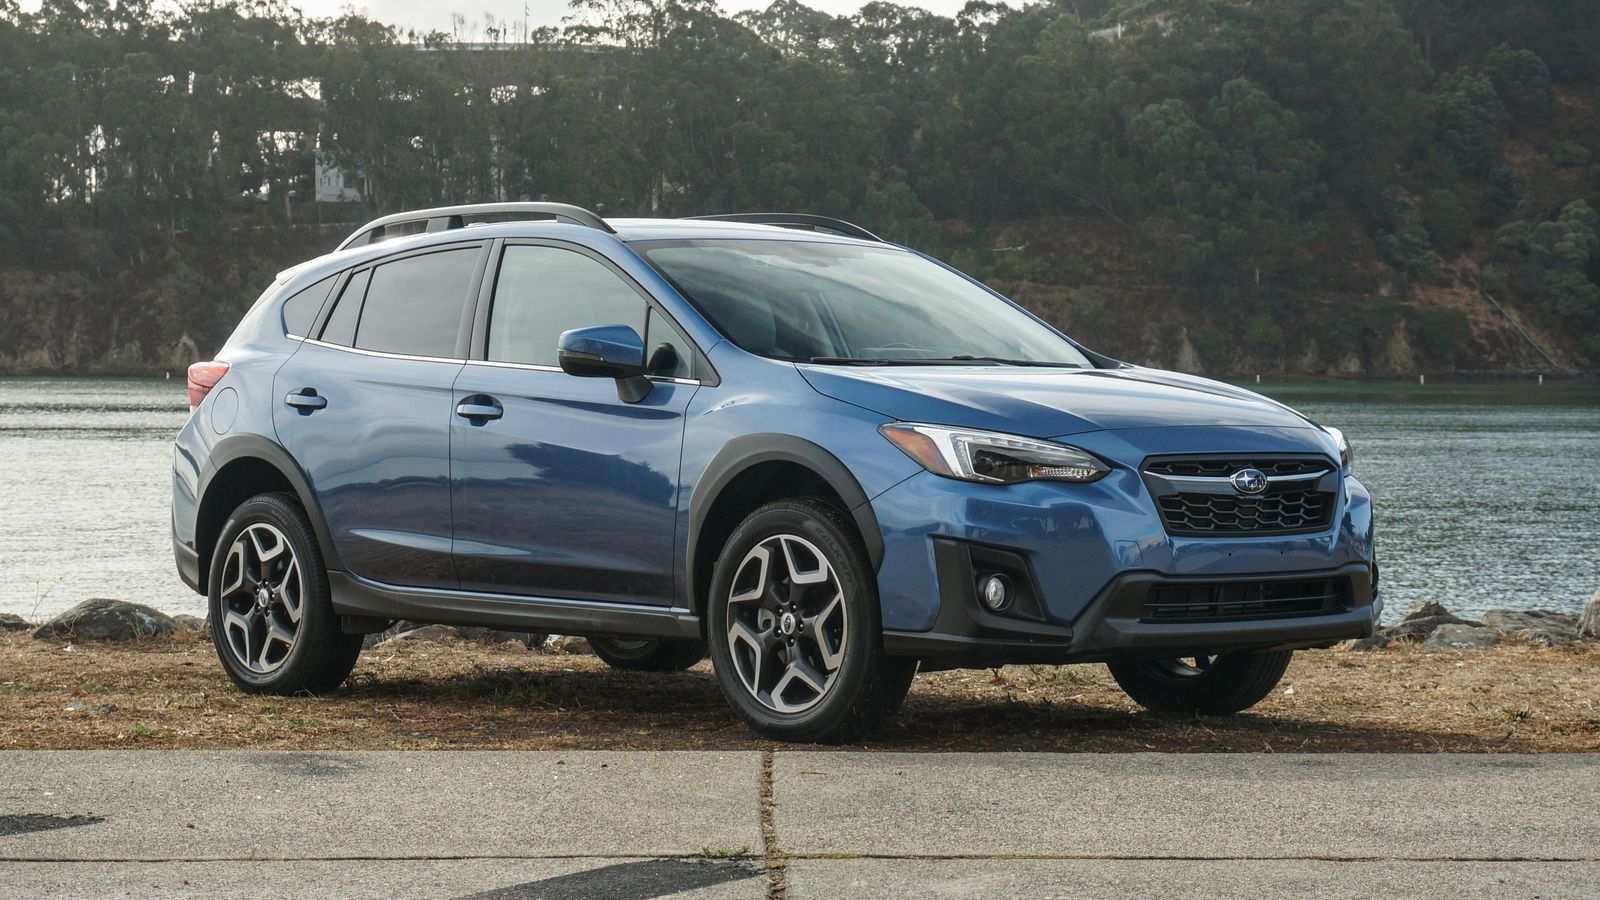 11 Concept of New 2019 Subaru Crosstrek Khaki New Concept Release Date with New 2019 Subaru Crosstrek Khaki New Concept